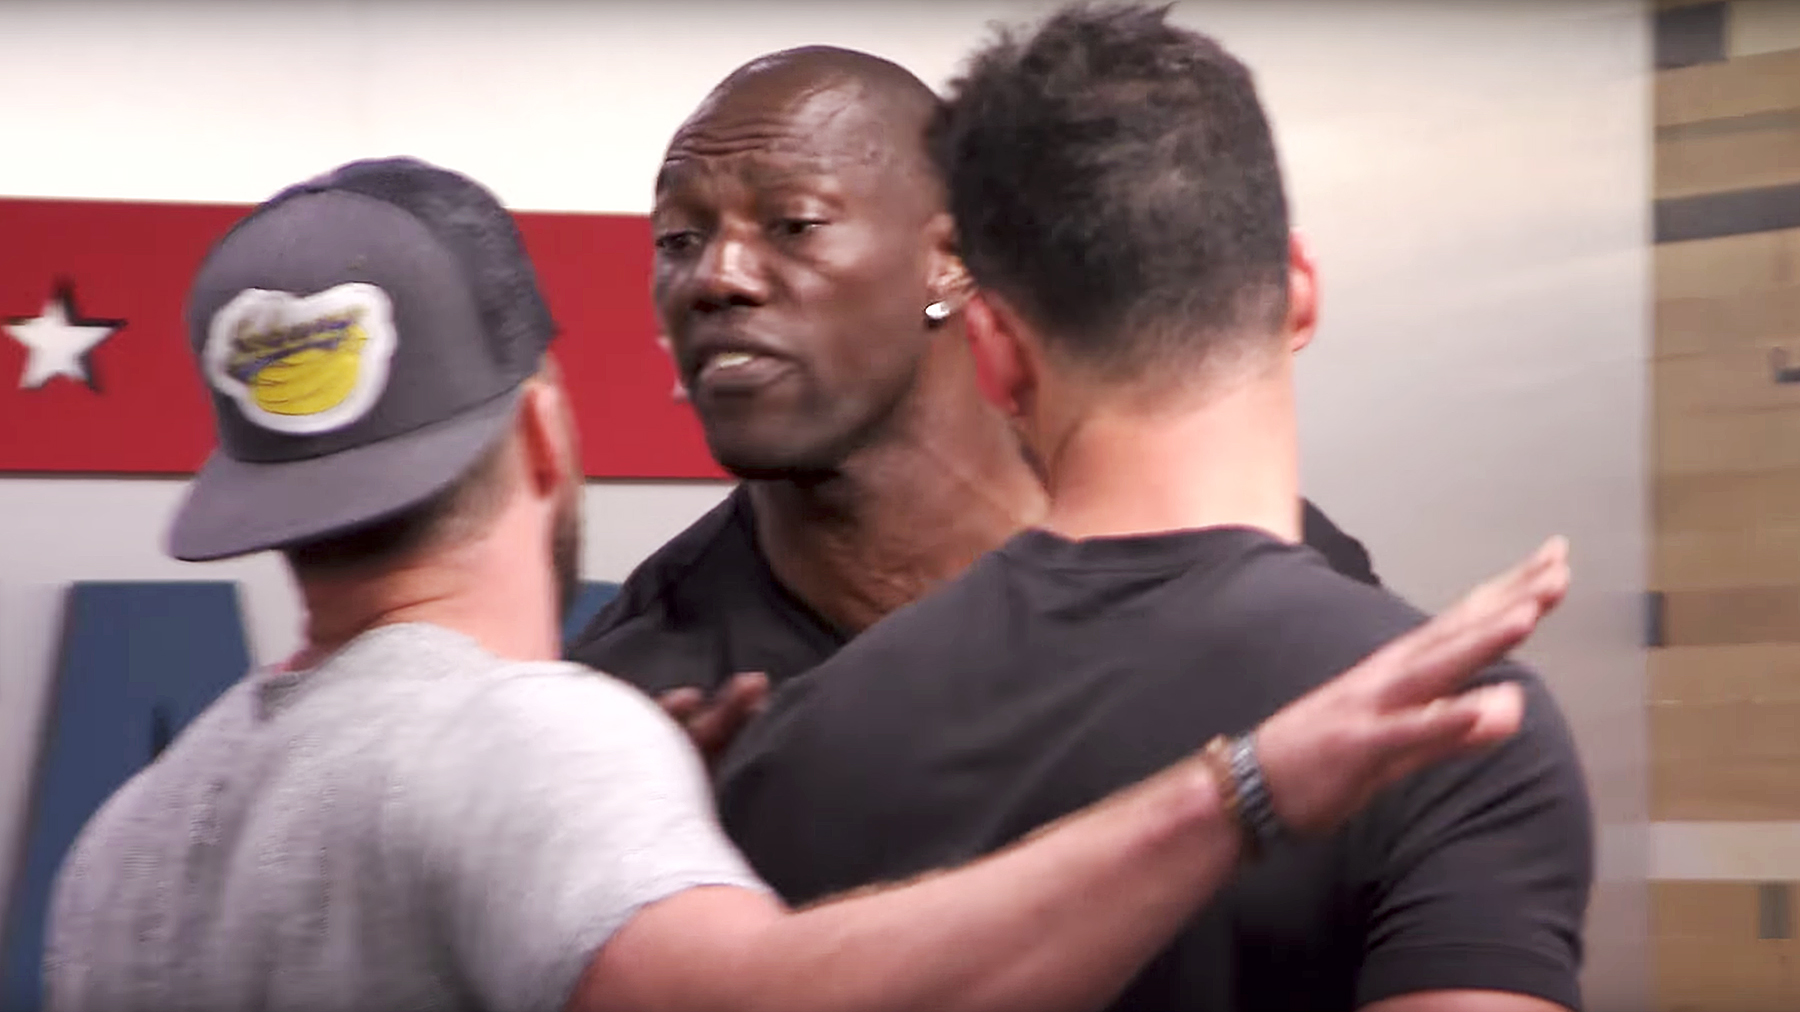 Terrell Owens The Challenge: Champs vs. Stars